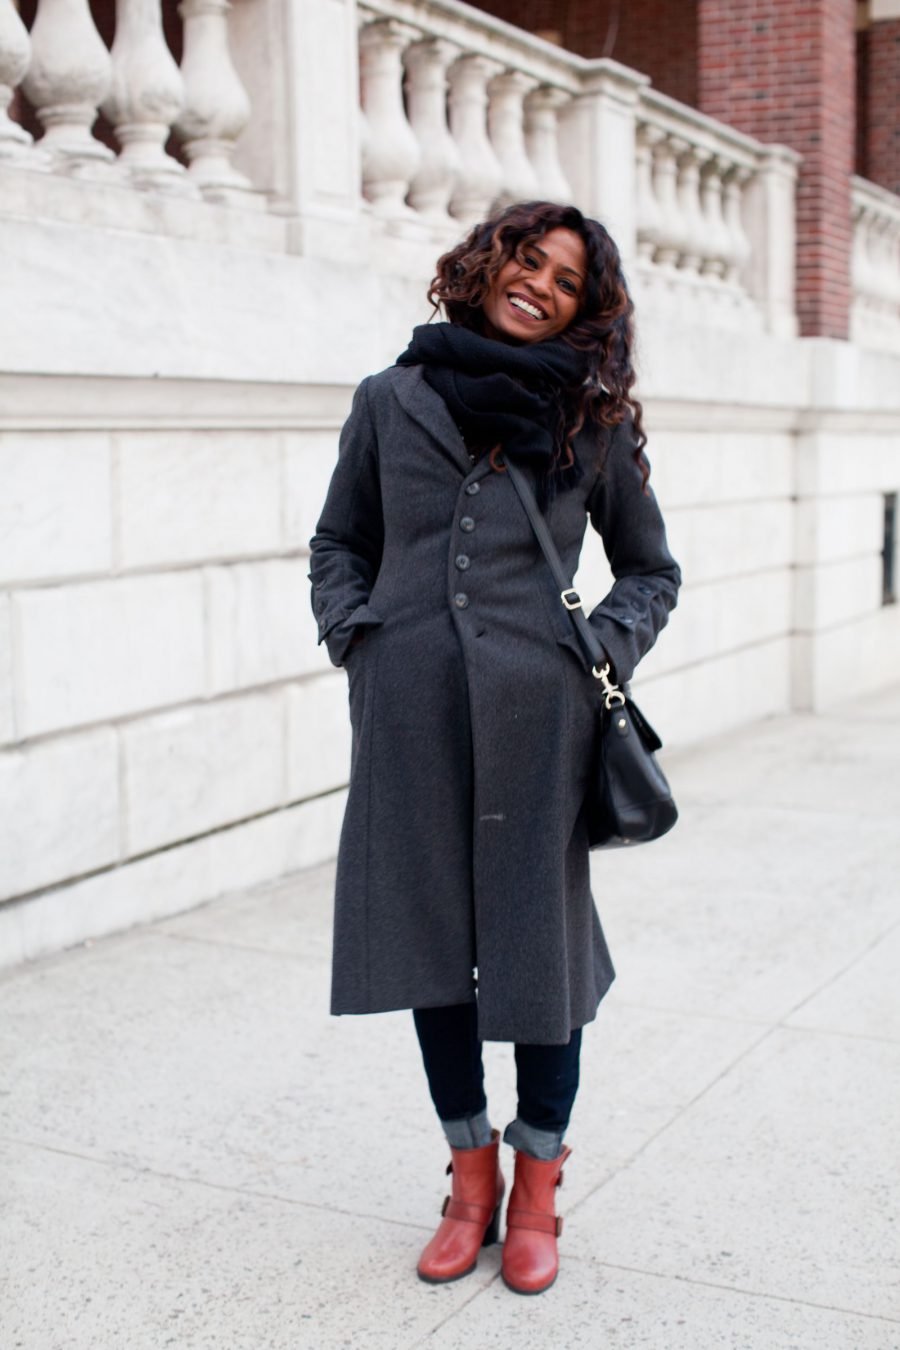 Best Winter Coats For Women 2020